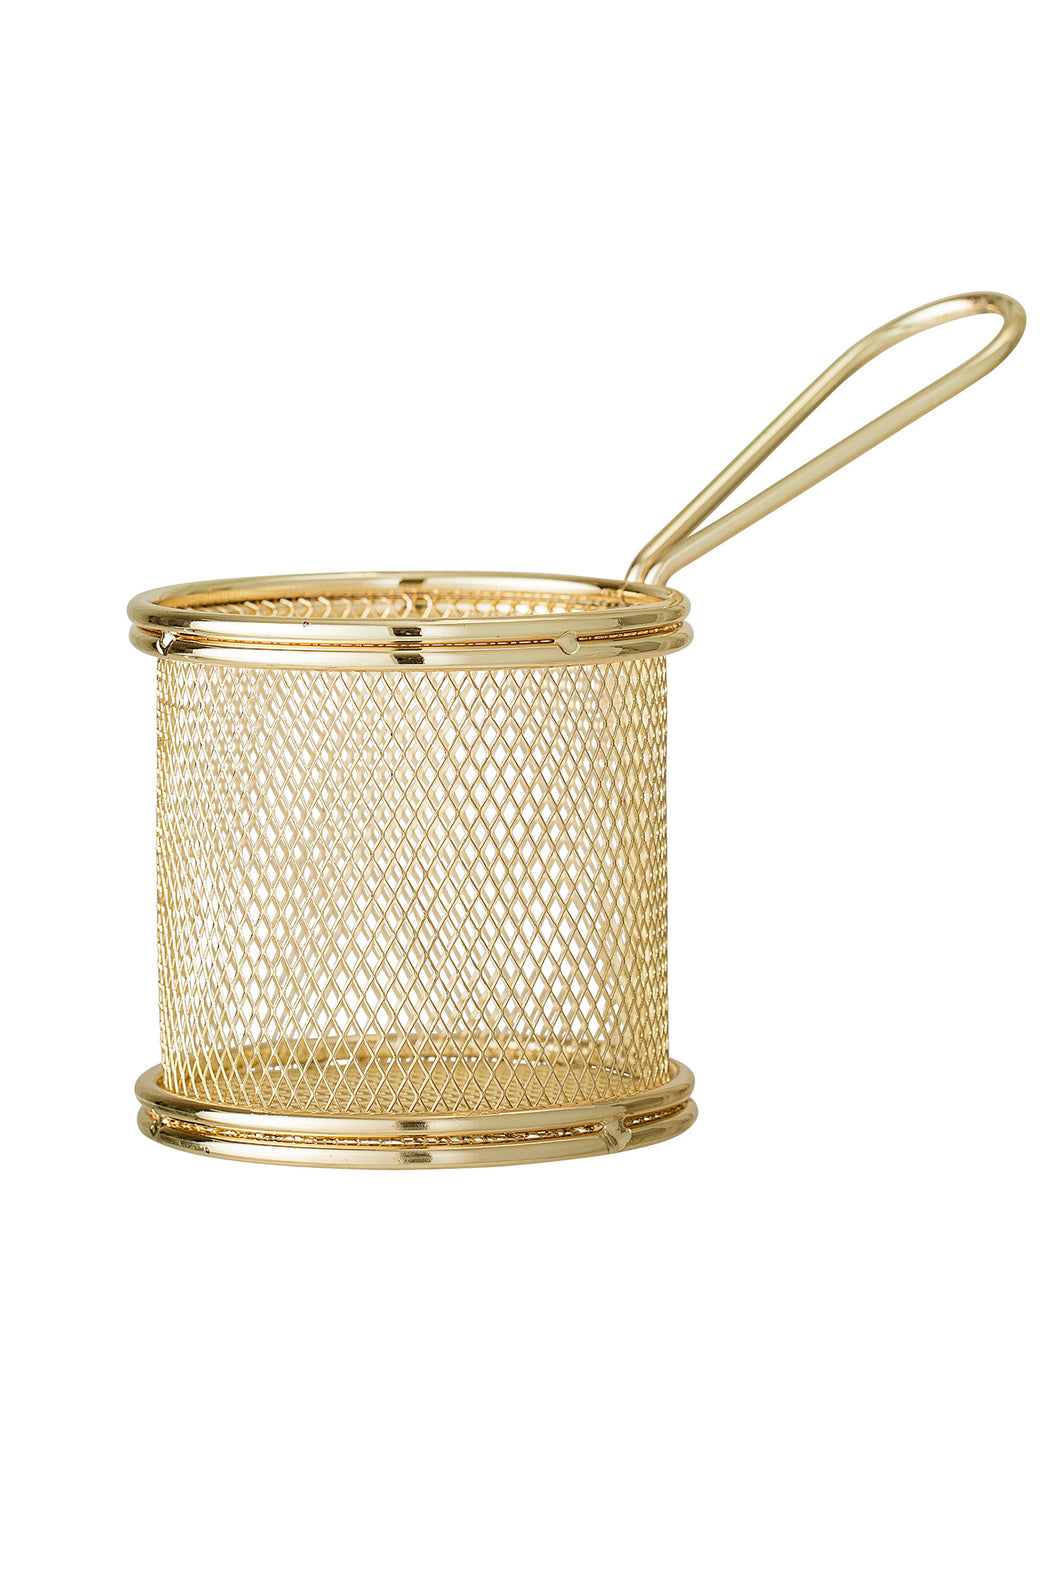 Golden Serving Basket